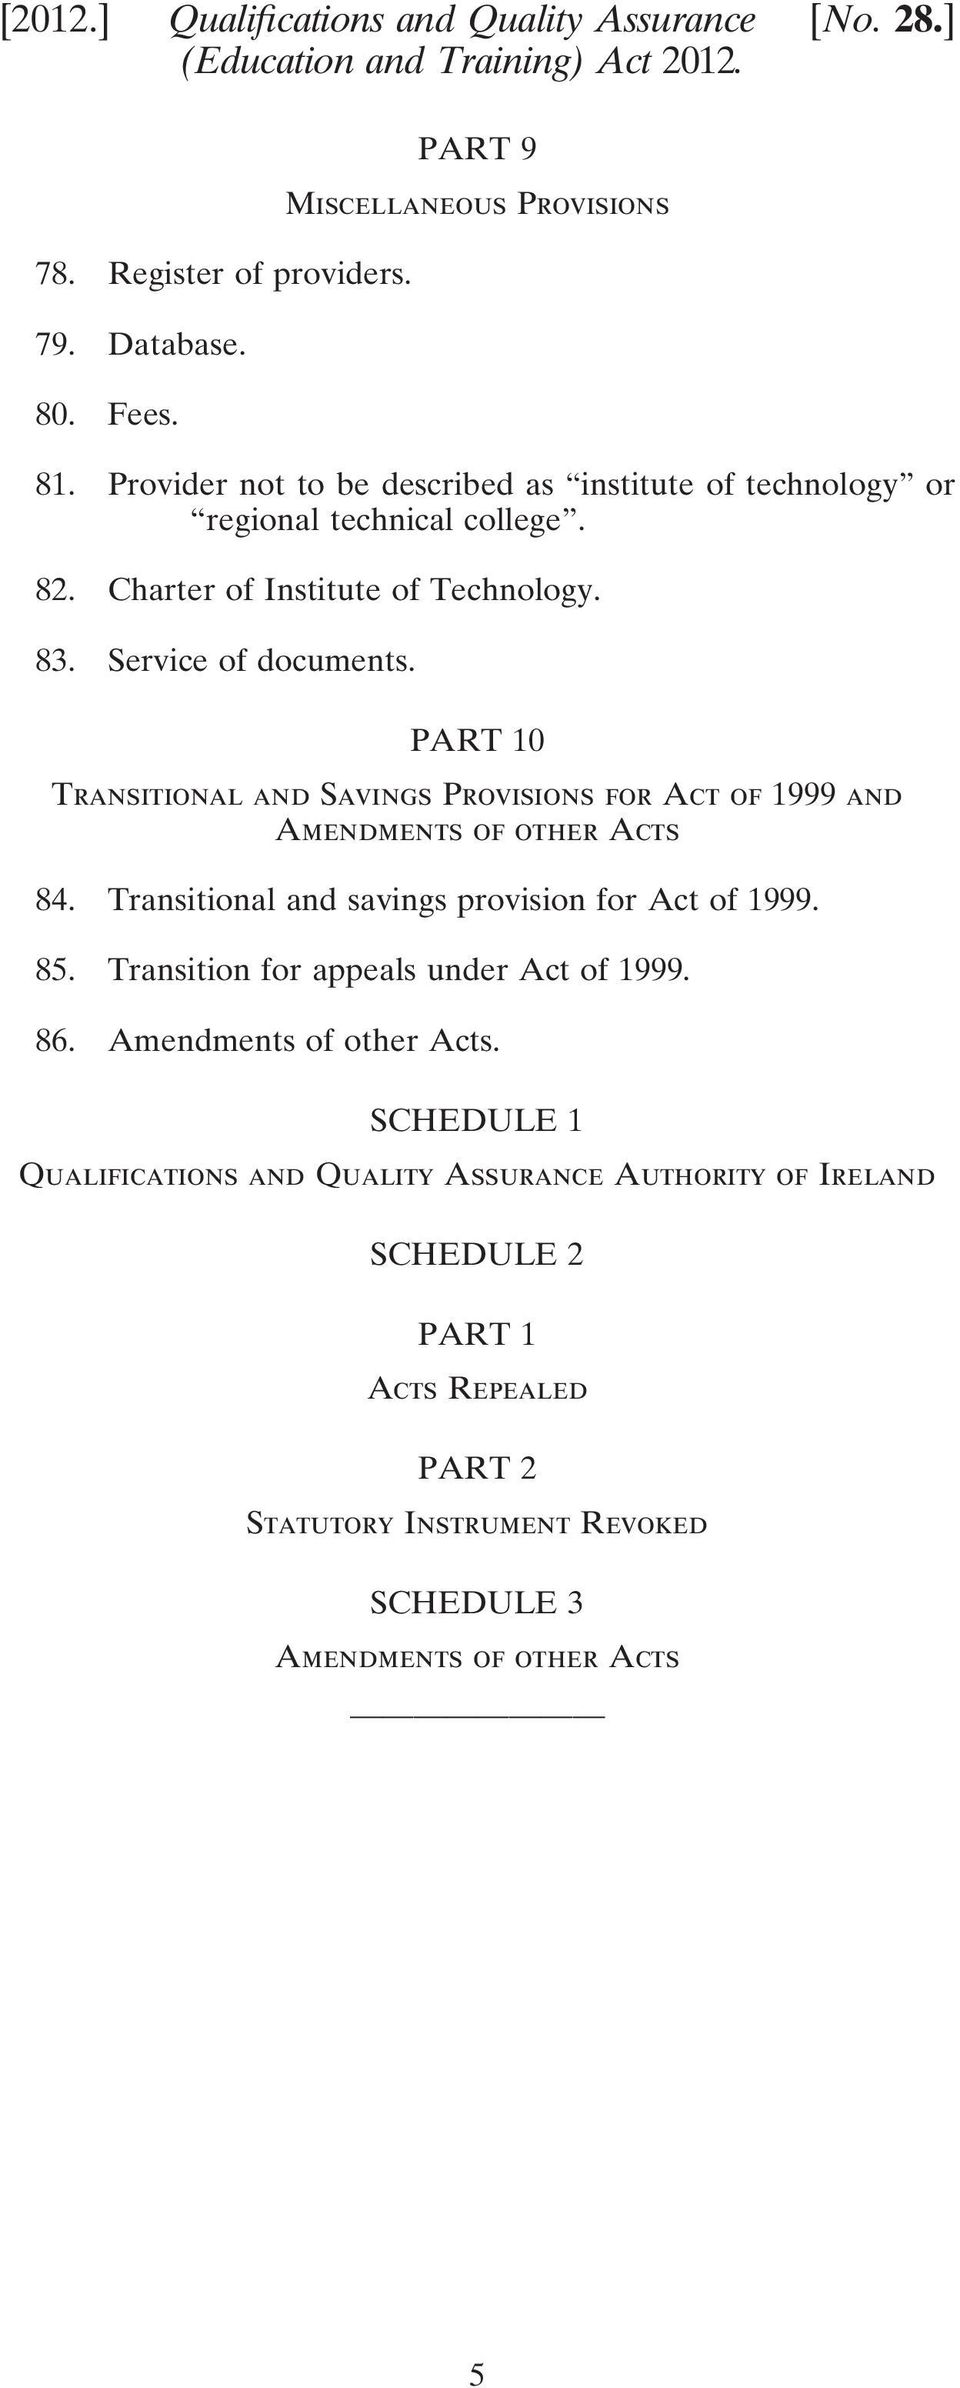 PART 10 Transitional and Savings Provisions for Act of 1999 and Amendments of other Acts 84. Transitional and savings provision for Act of 1999. 85.